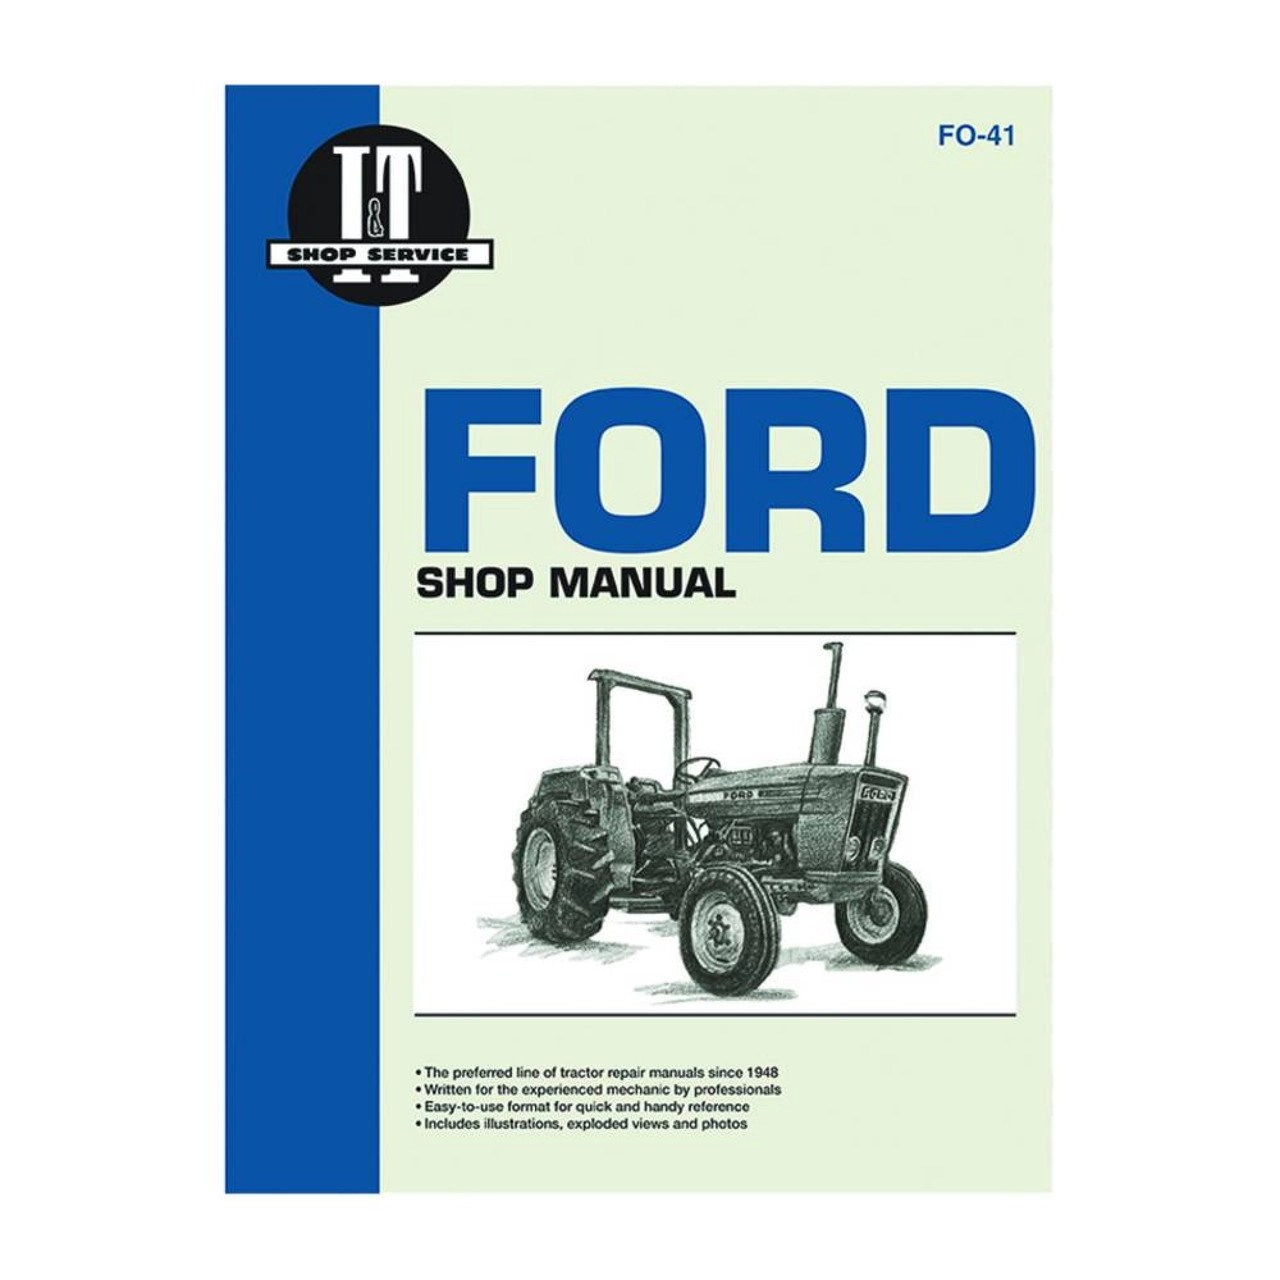 small resolution of service manual ford new holland tractor fo 41 2310 2600 2610 3600 ford 4600 tractor parts diagram